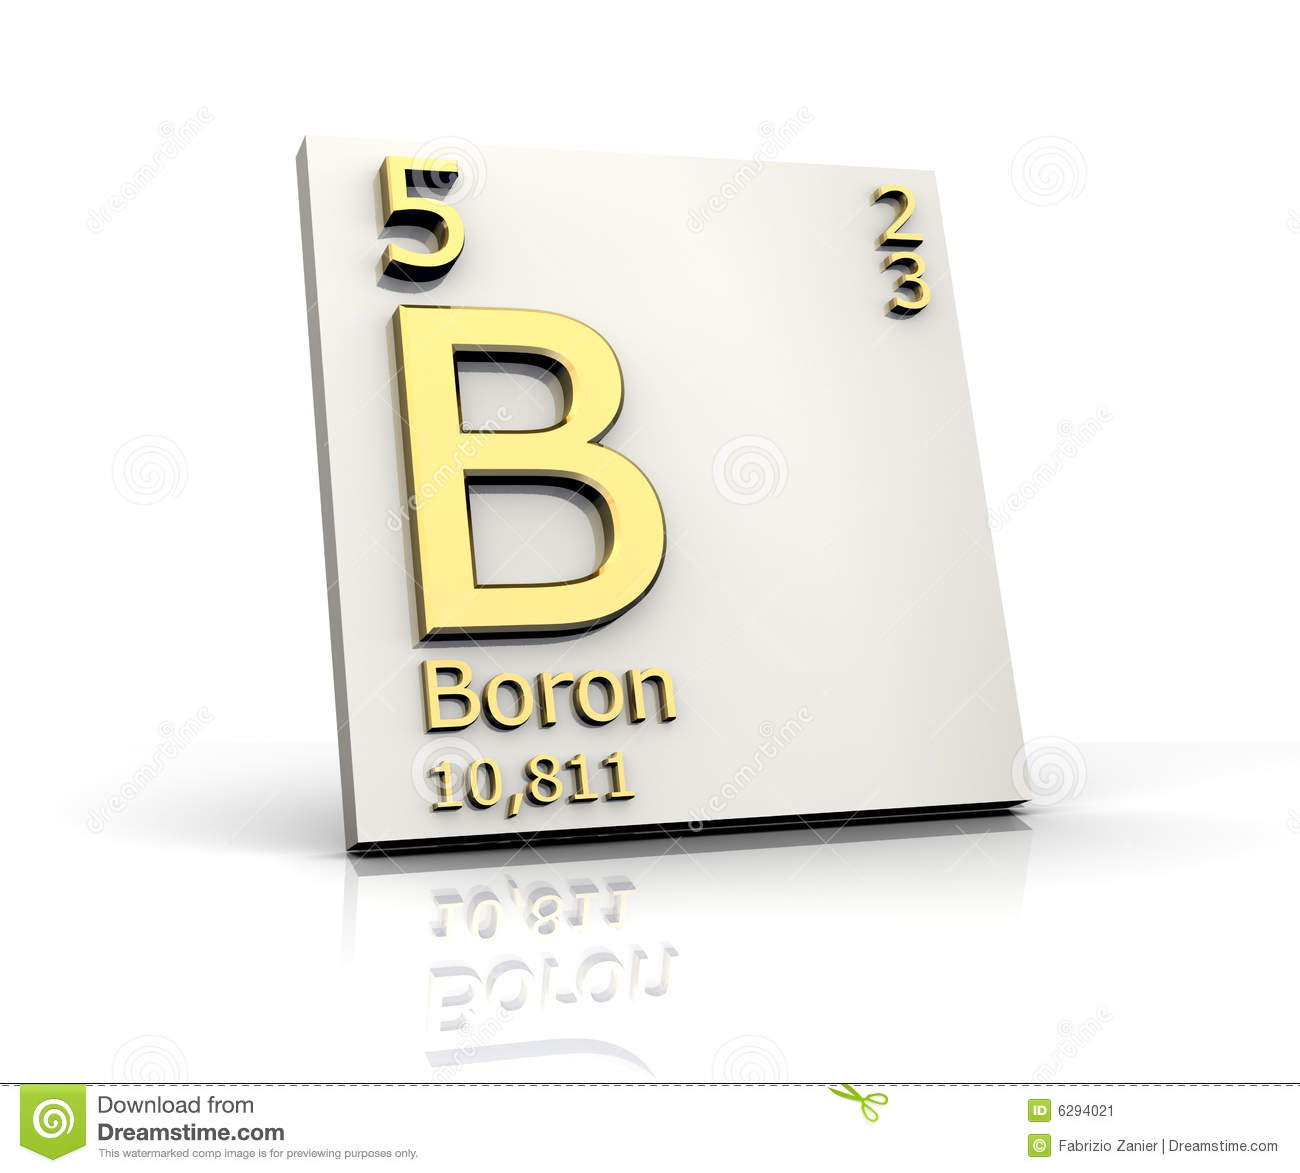 Boron from periodic table of elements stock image image 6294021 royalty free stock photo download boron from periodic table gamestrikefo Image collections